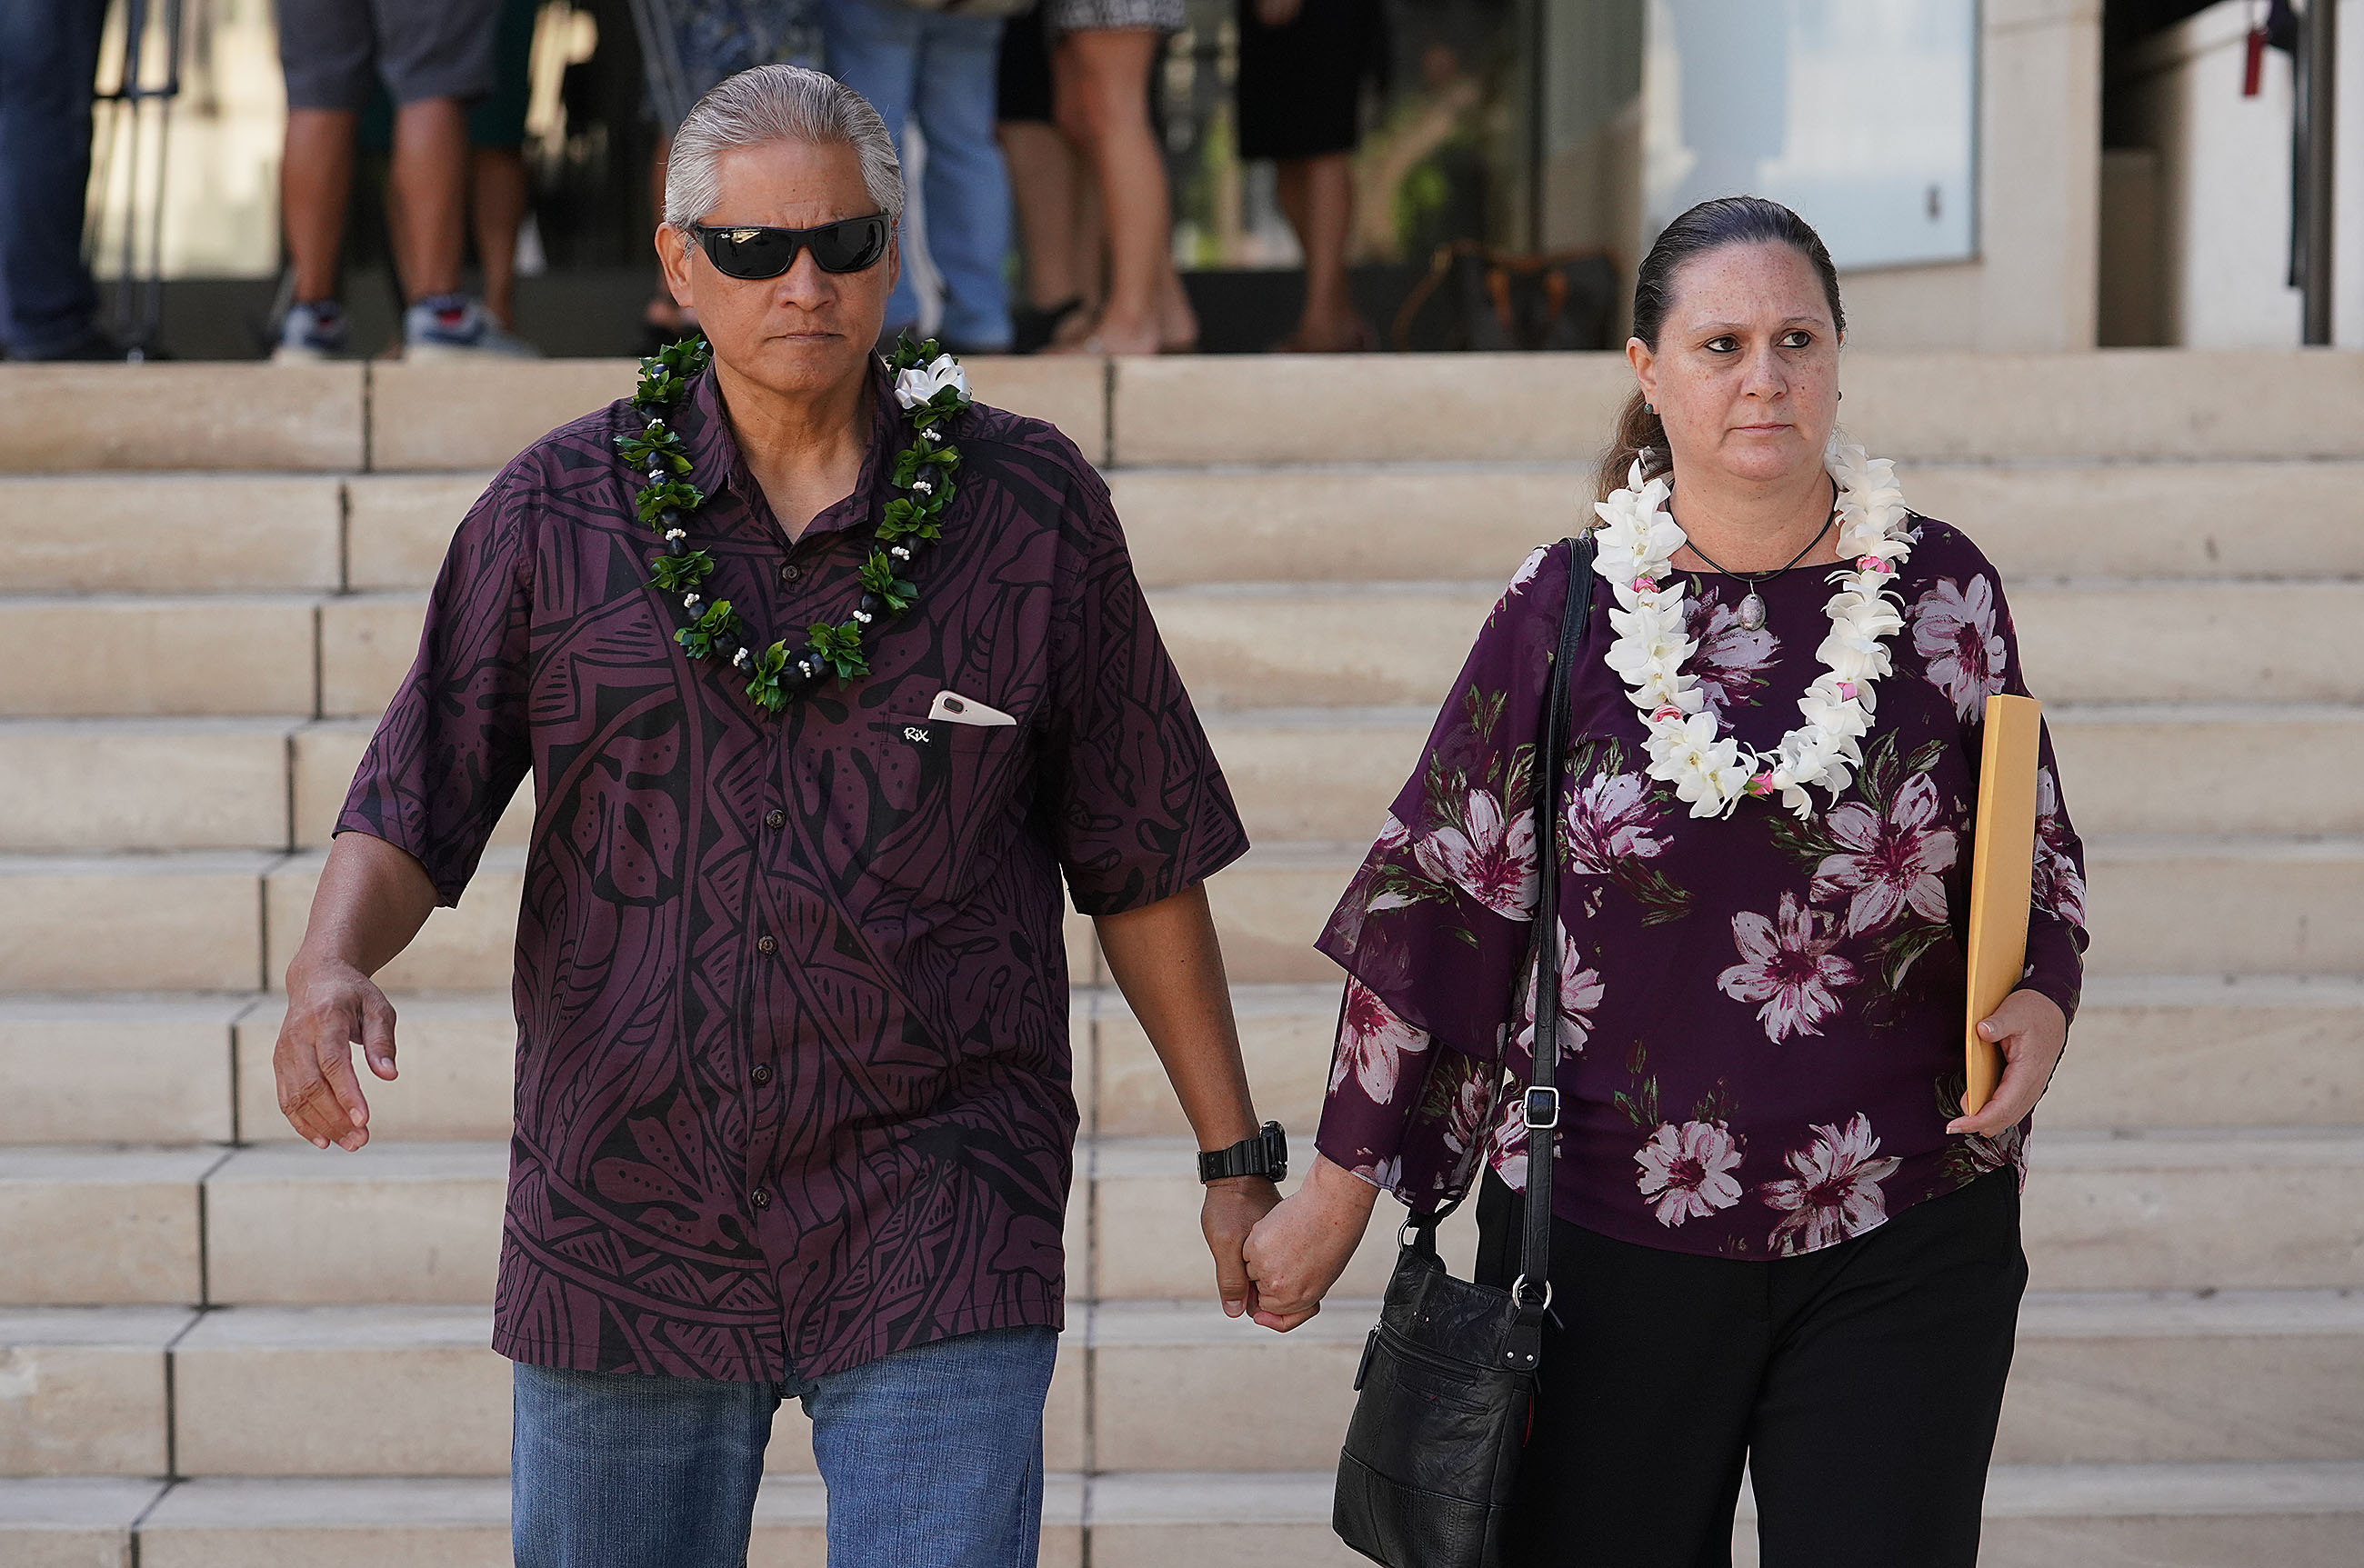 <p><strong>FEDERAL INVESTIGATION WIDENS:</strong> Former Honolulu Police Chief and his wife, former deputy prosecutor Katherine Kealoha, leave District Court after a hearing in October regarding the federal corruption charges against them. In December, Honolulu's chief prosecuting attorney, Keith Kaneshiro, was reportedly informed he was also a target in the widening probe.</p>